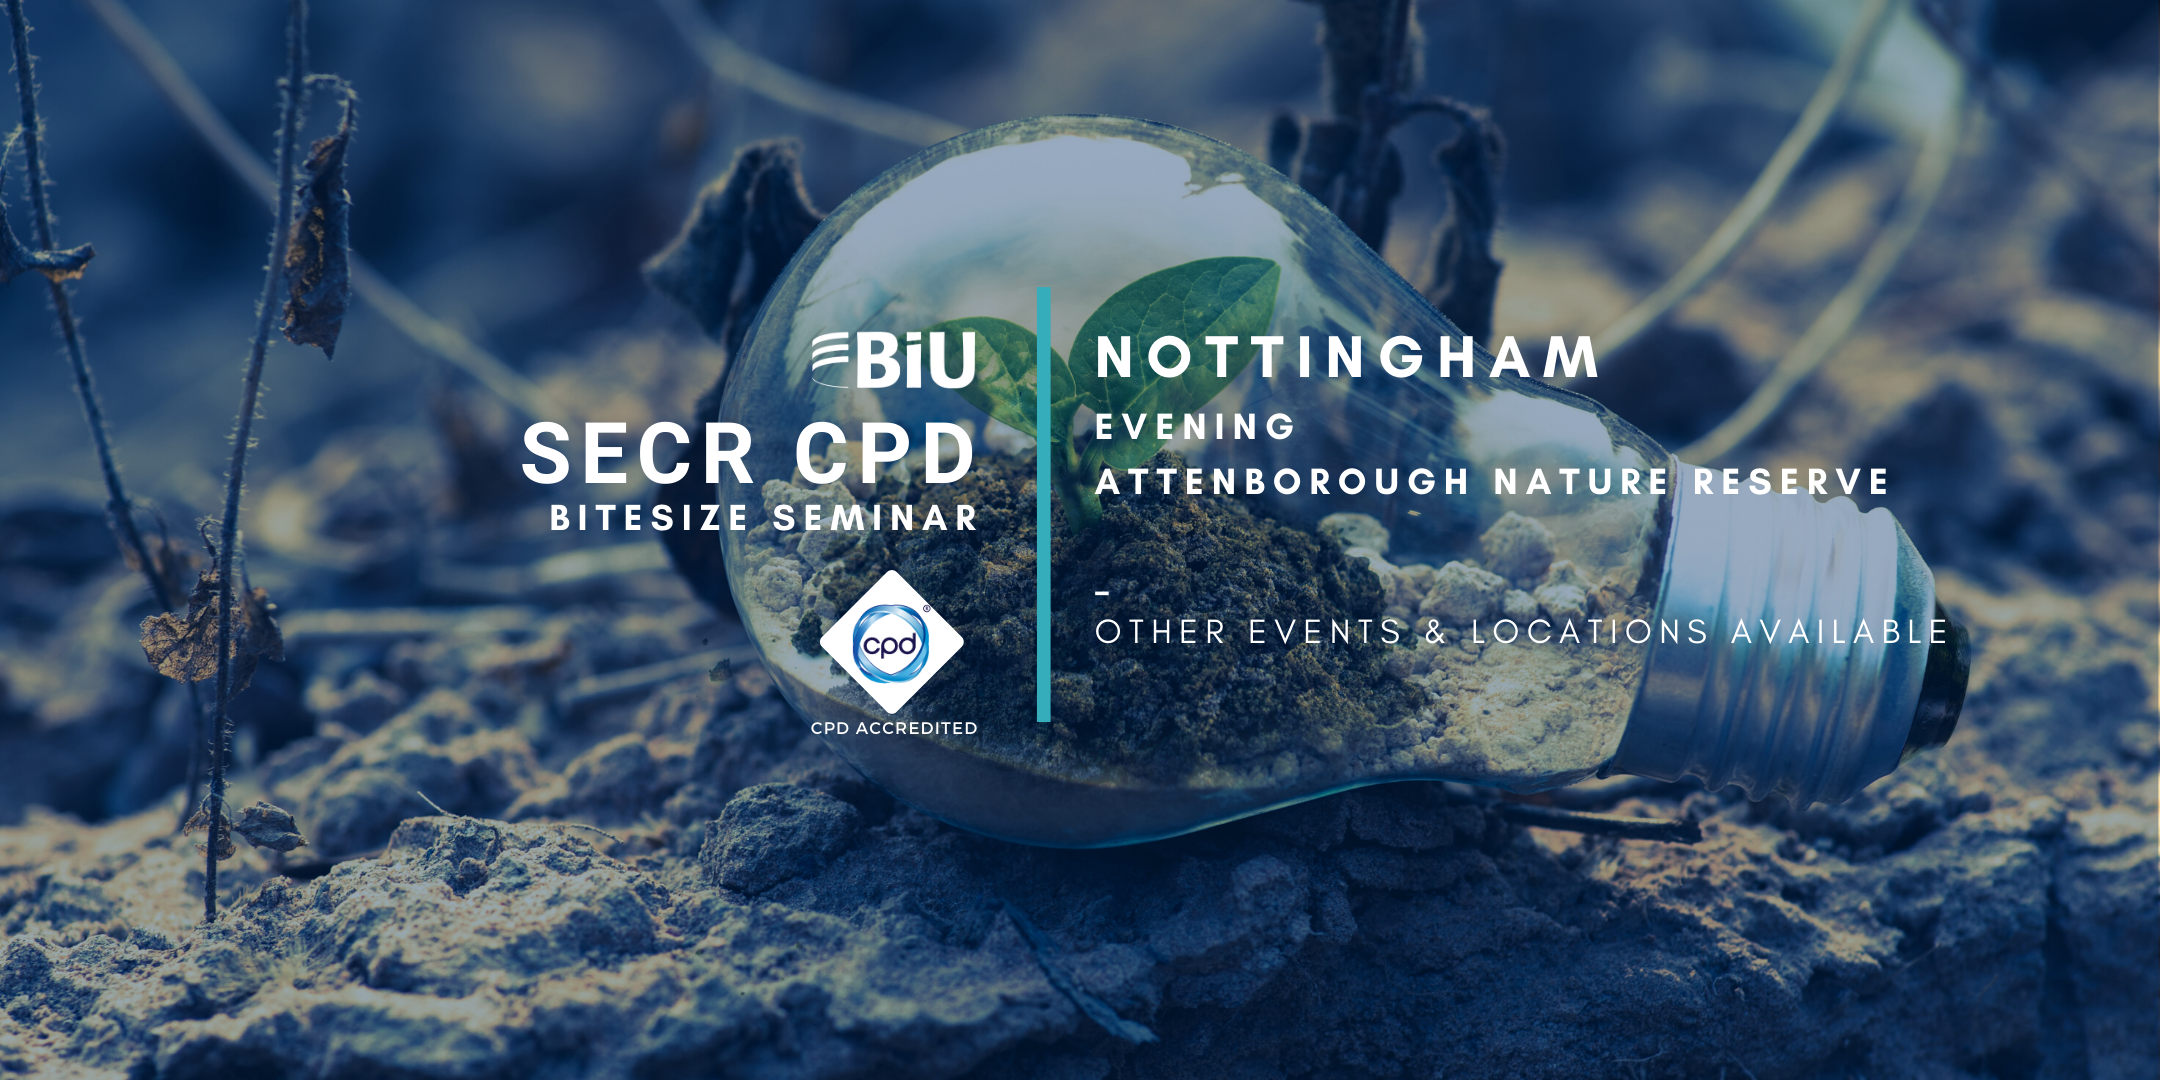 BiU Bitesize SECR CPD - Nottingham, Evening